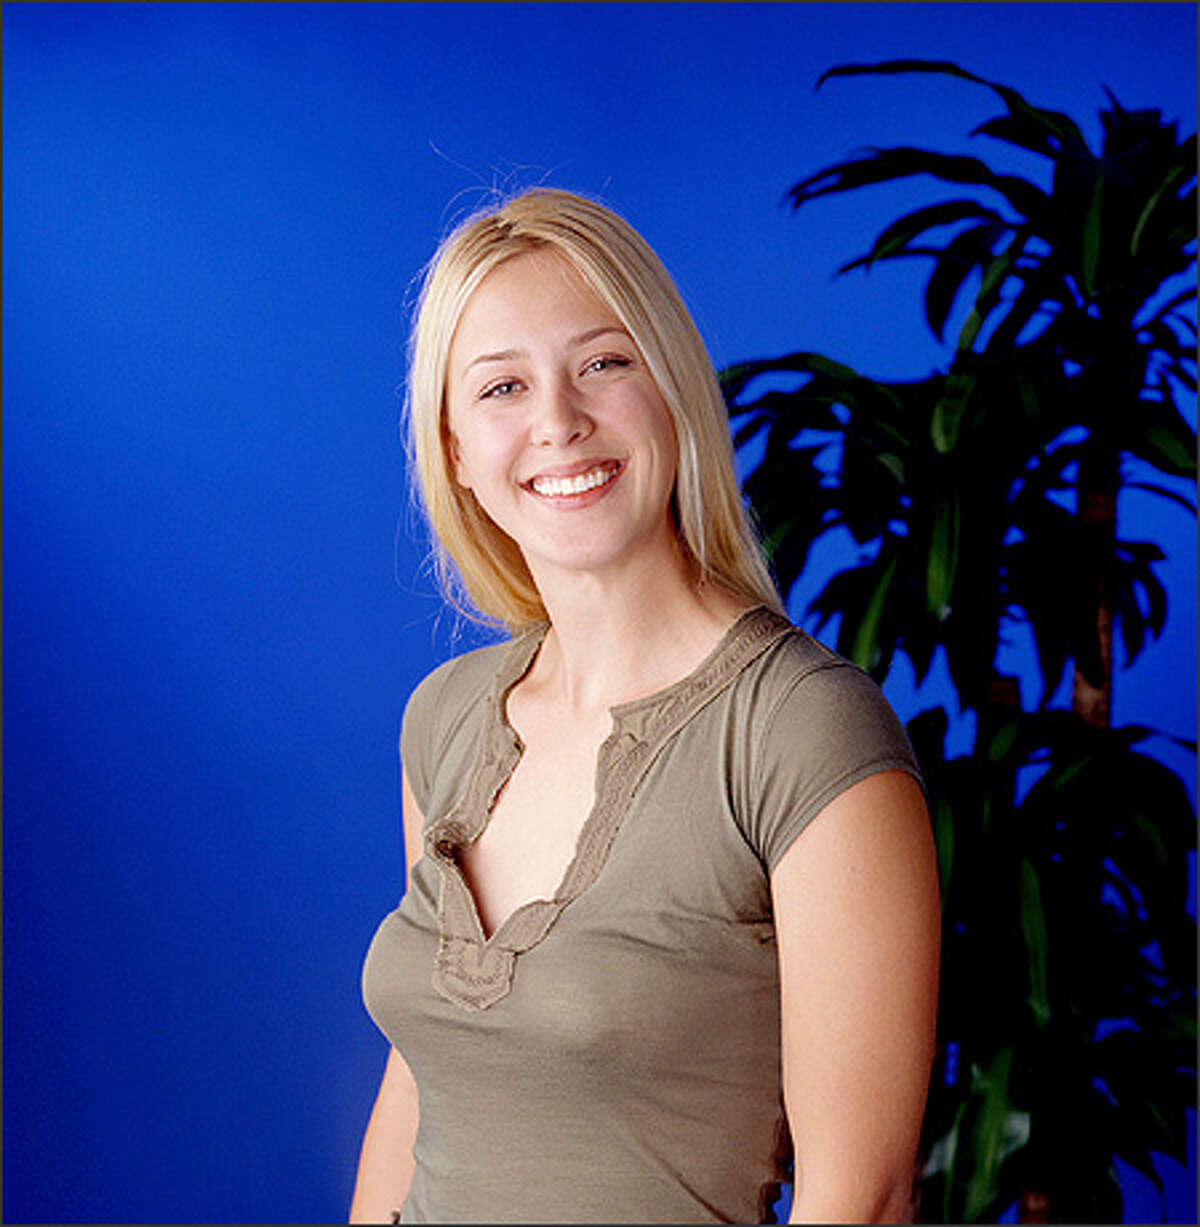 Name: Christa Hastie Occupation:Computer Programmer Age: 24 Hometown:Los Angeles